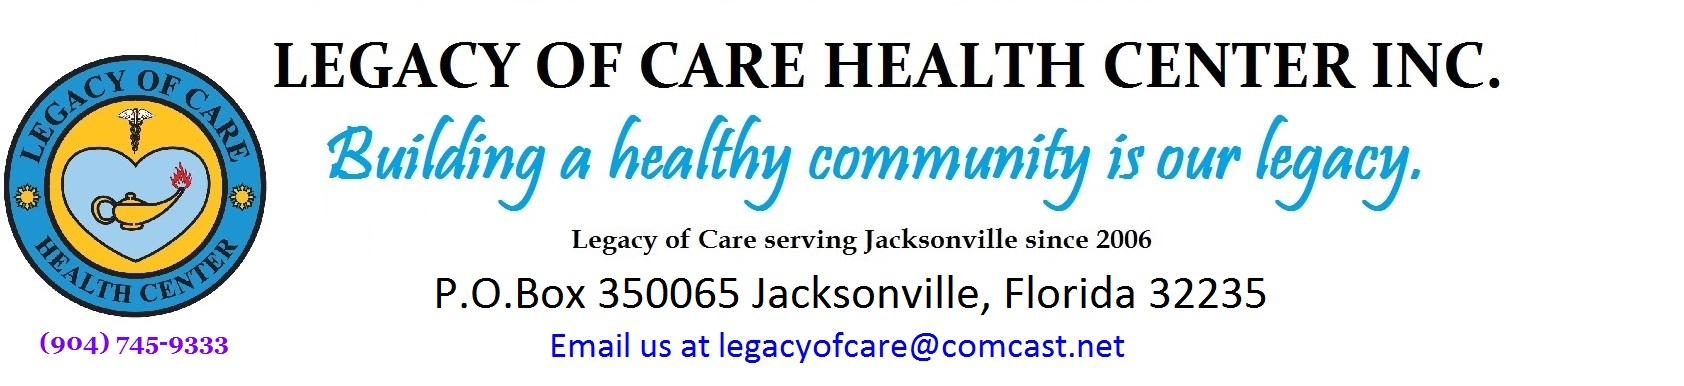 Legacy of Care Health Center